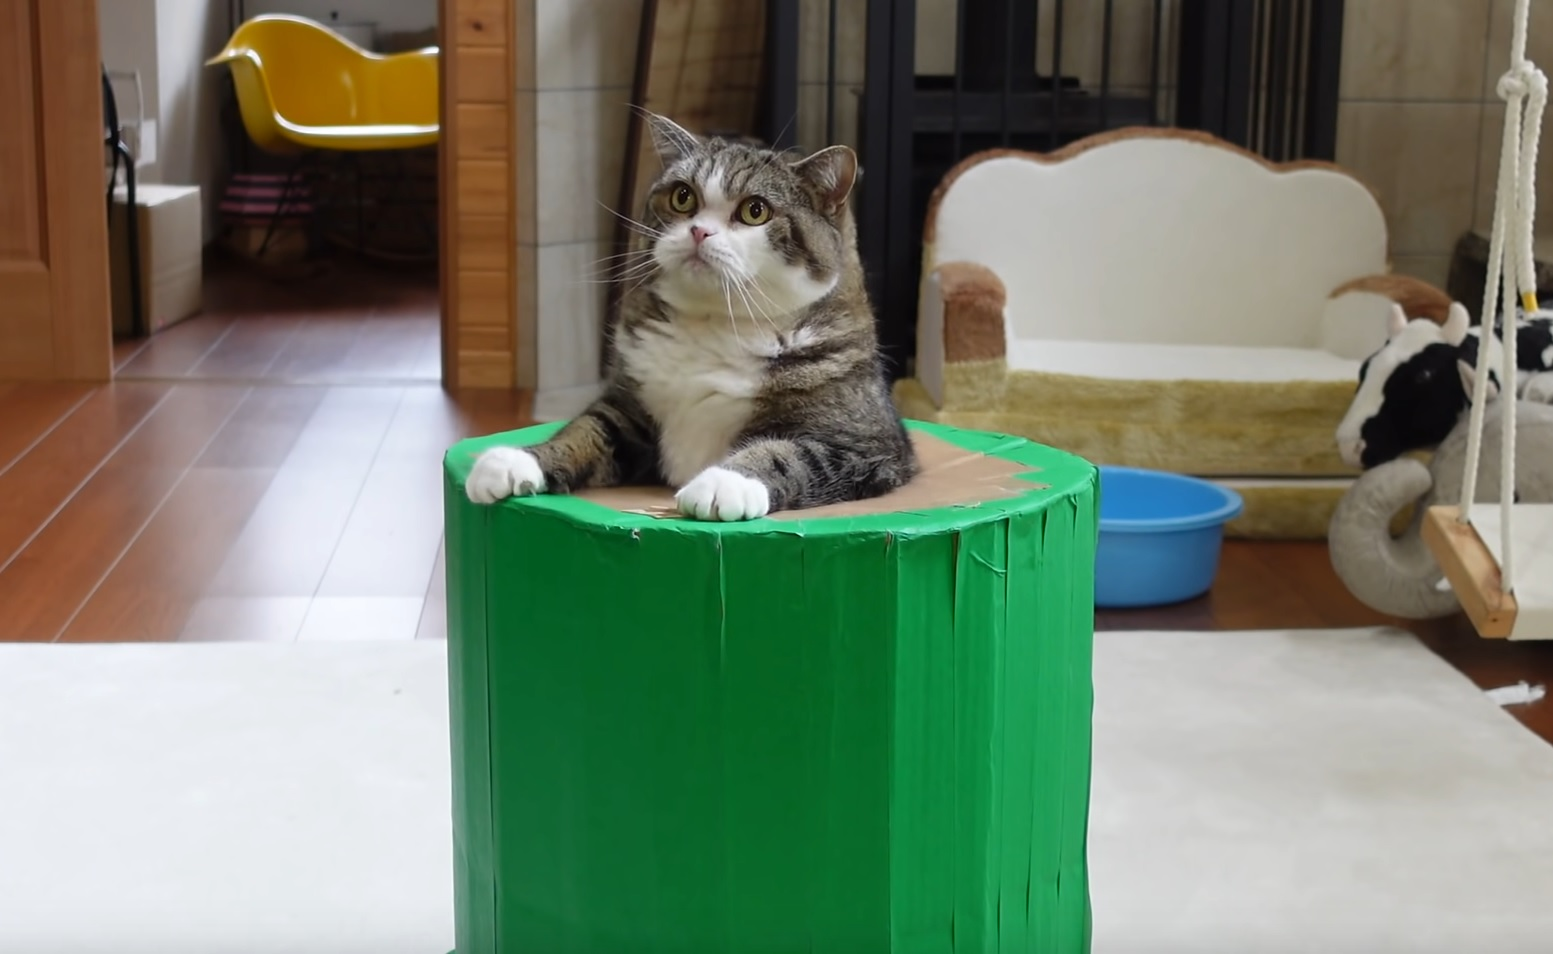 Maru Cannot Get Out Of Pipe